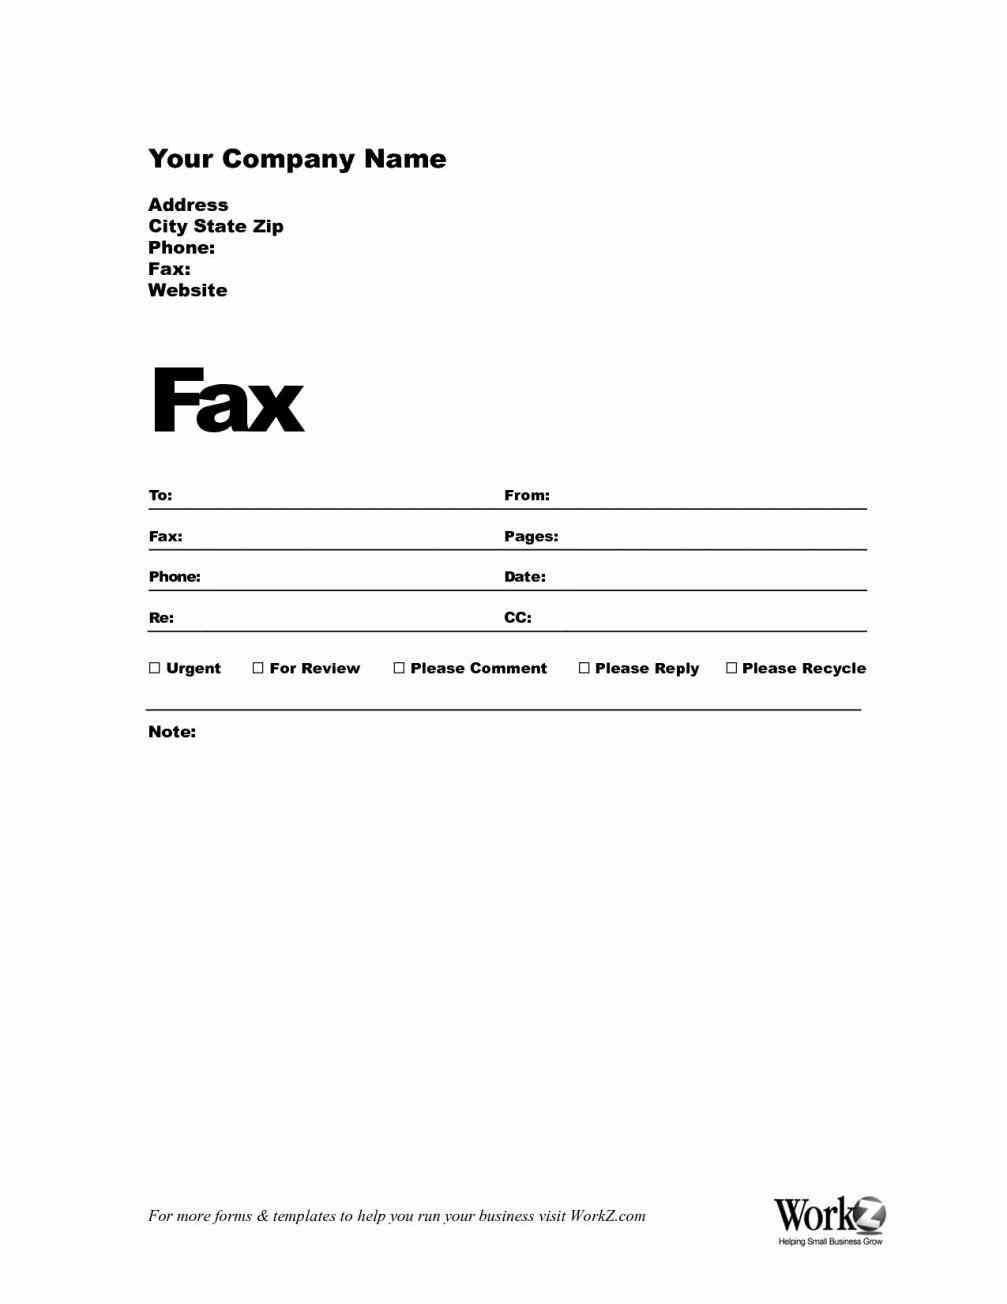 Template Fax Cover Template Microsoft Word U Sheet Microsoft Ms